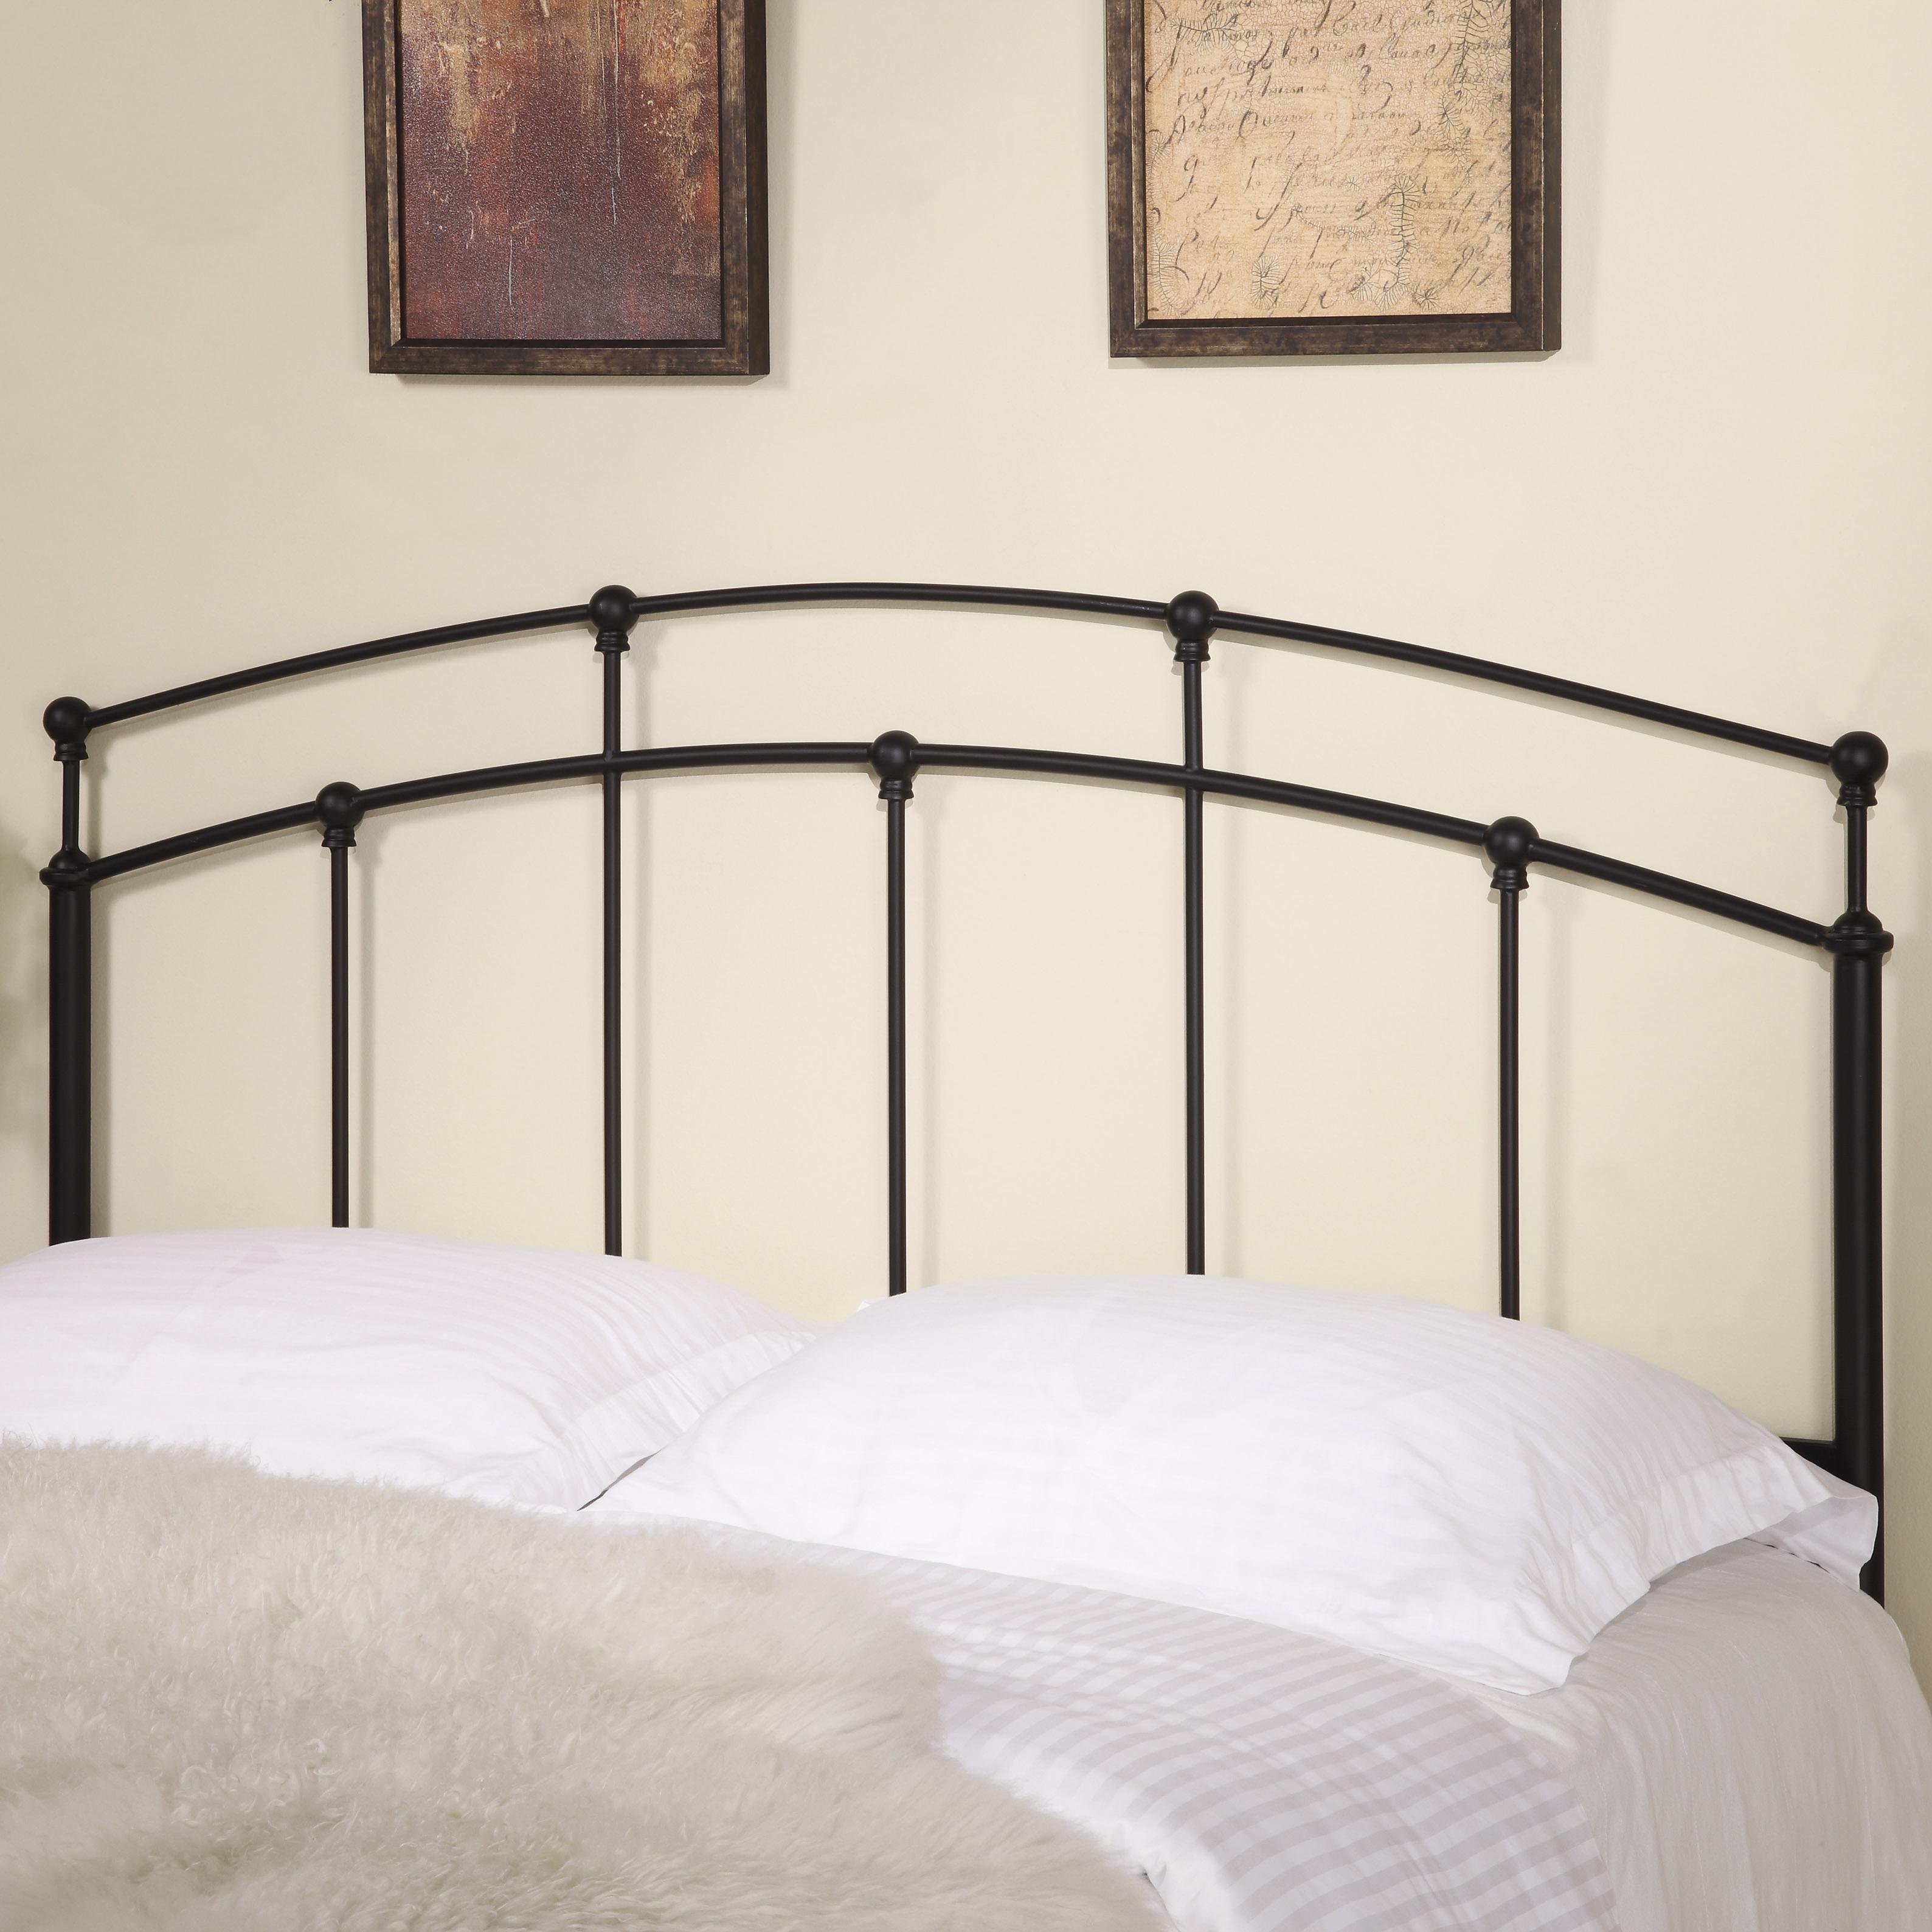 Coaster #300190QF Black Iron Style Headboard - Available in Full and ...